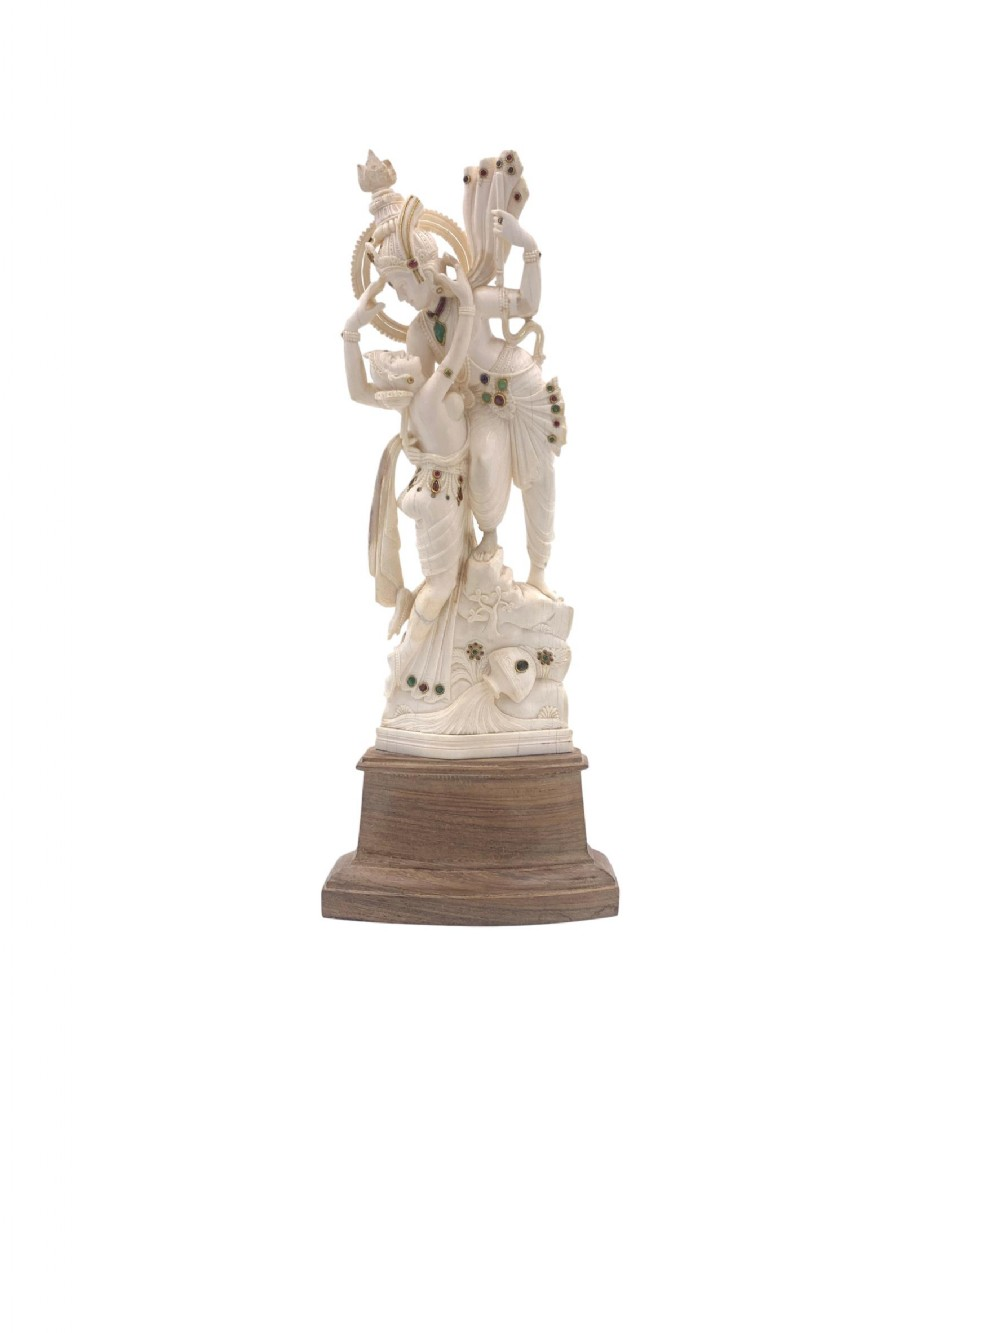 carved bejewelled indian ivory statue of embracing lovers radha and krishna raised on a wooden stand